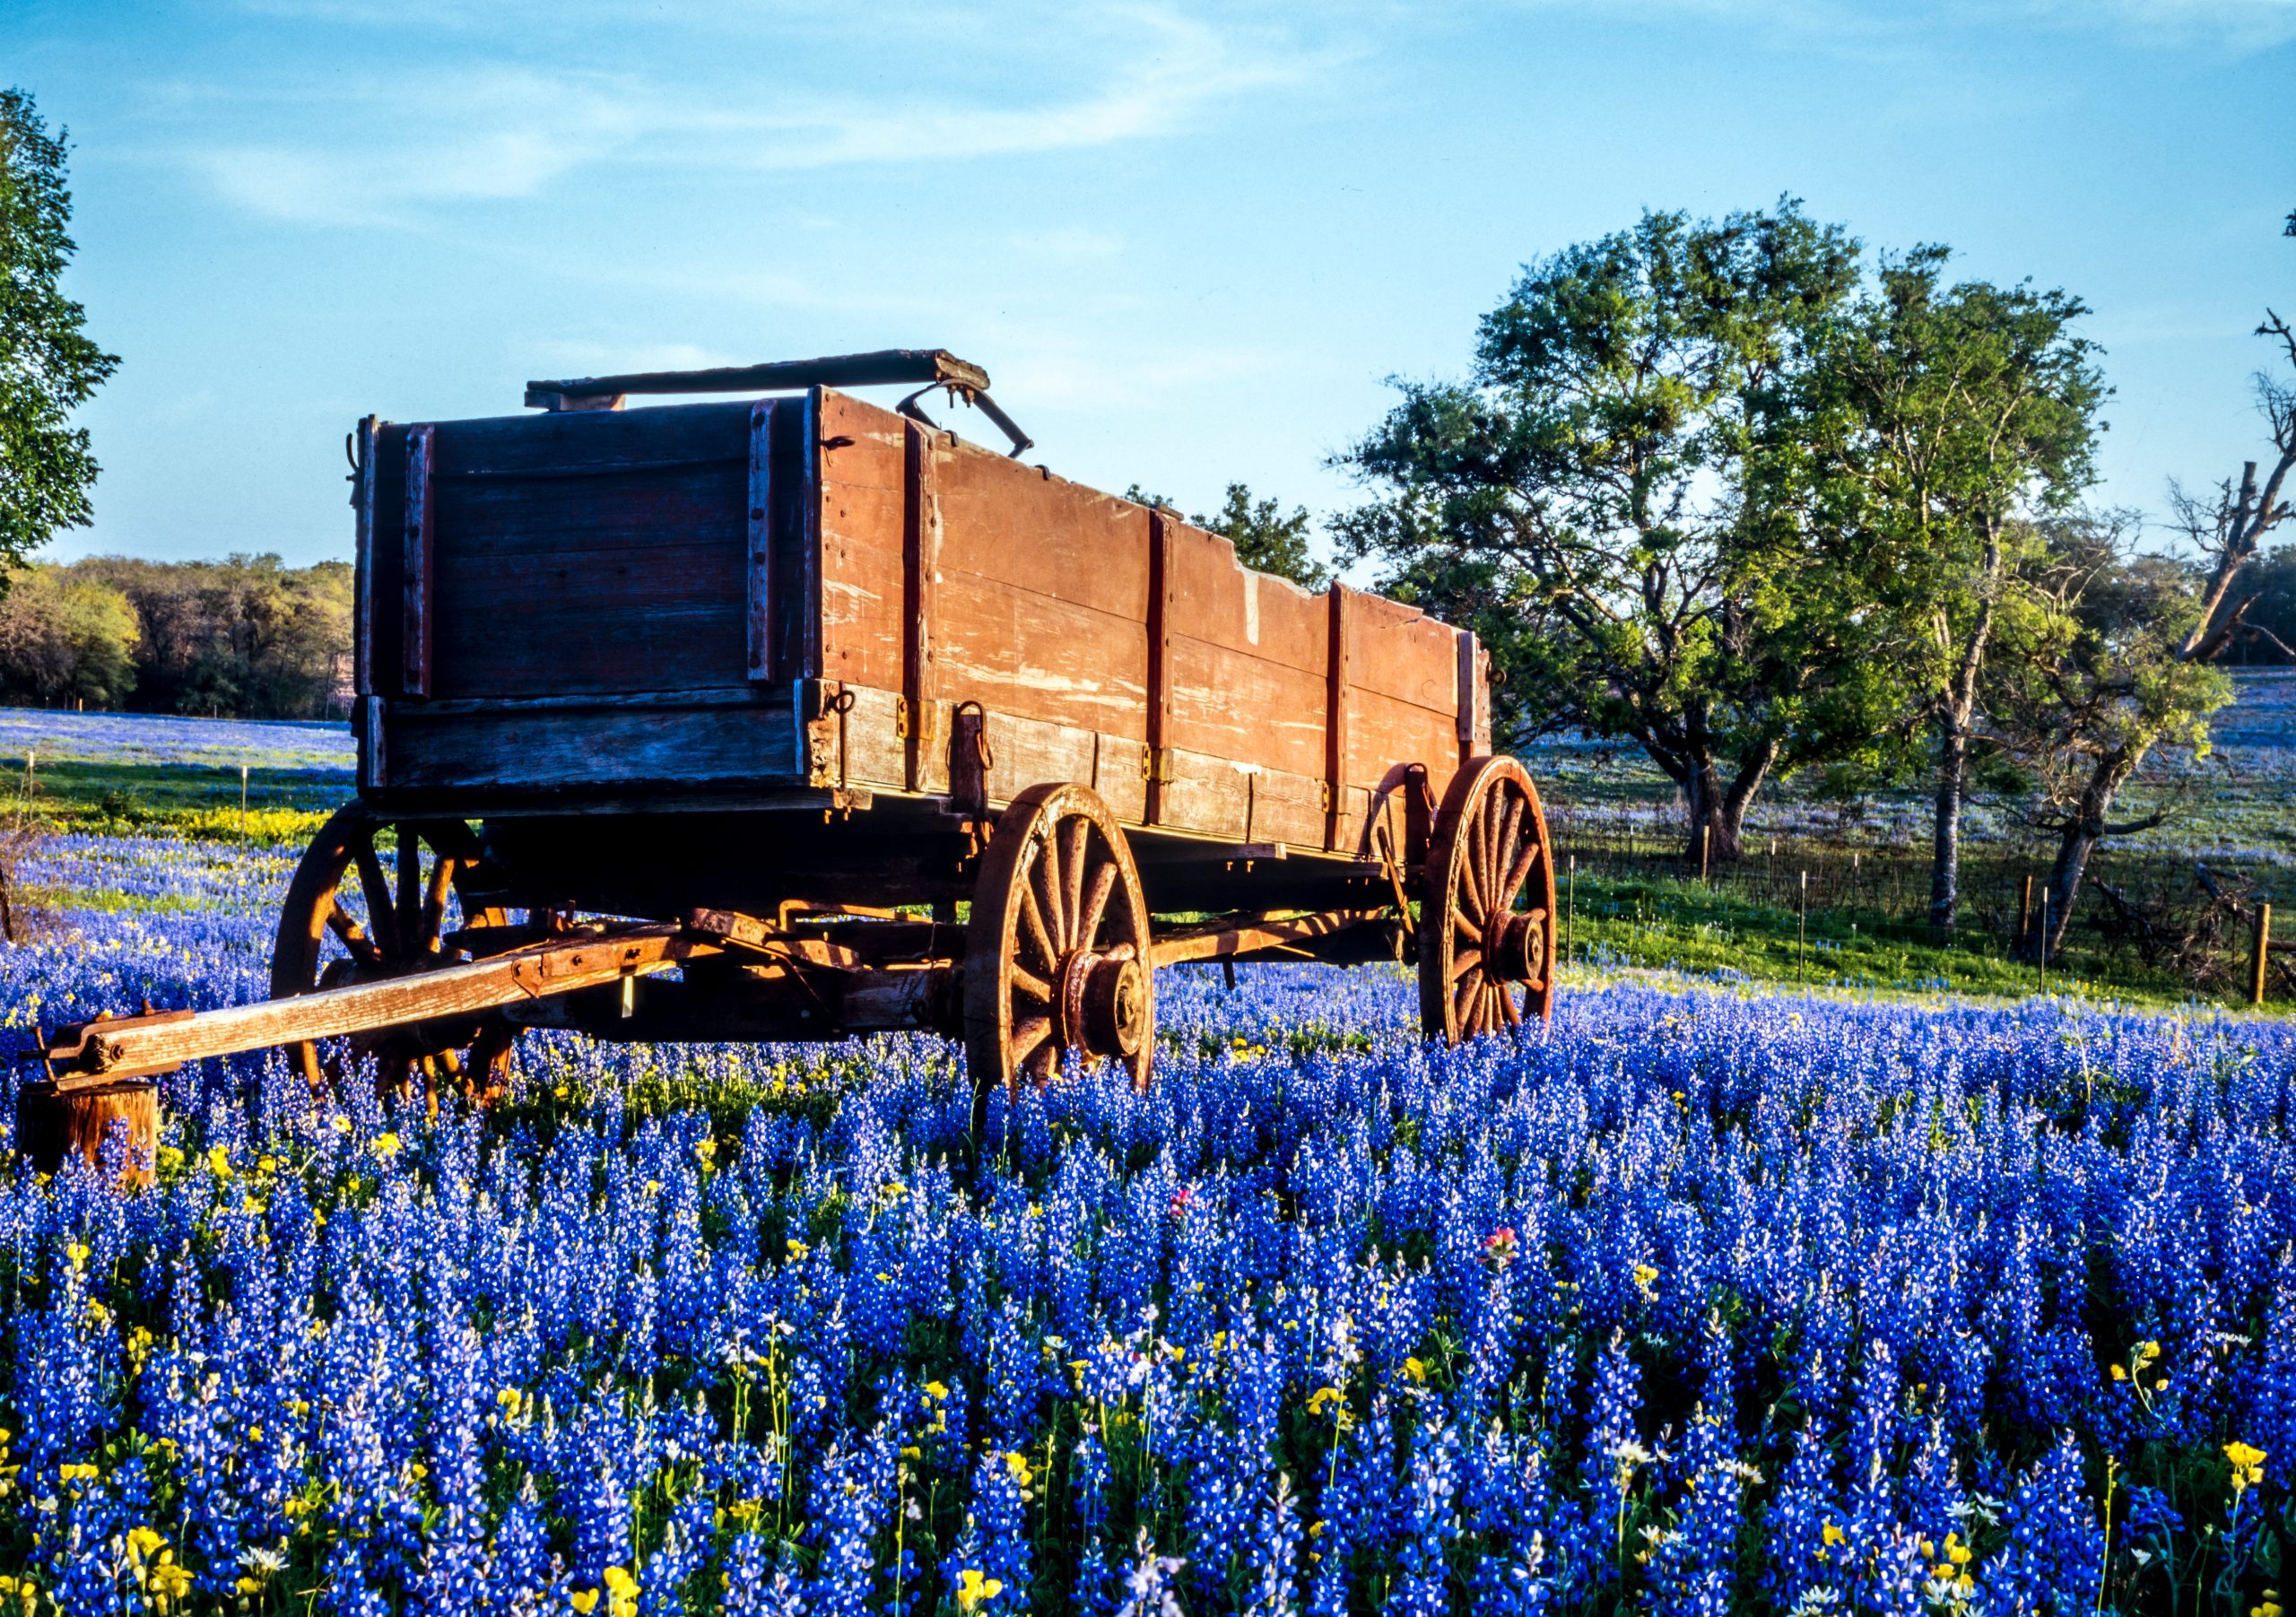 Wood cart sitting in a field of blooming bluebonnets. Seeking out bluebonnet fields is one of the most fun things to do in Texas and belngs on any Texas bucket list!